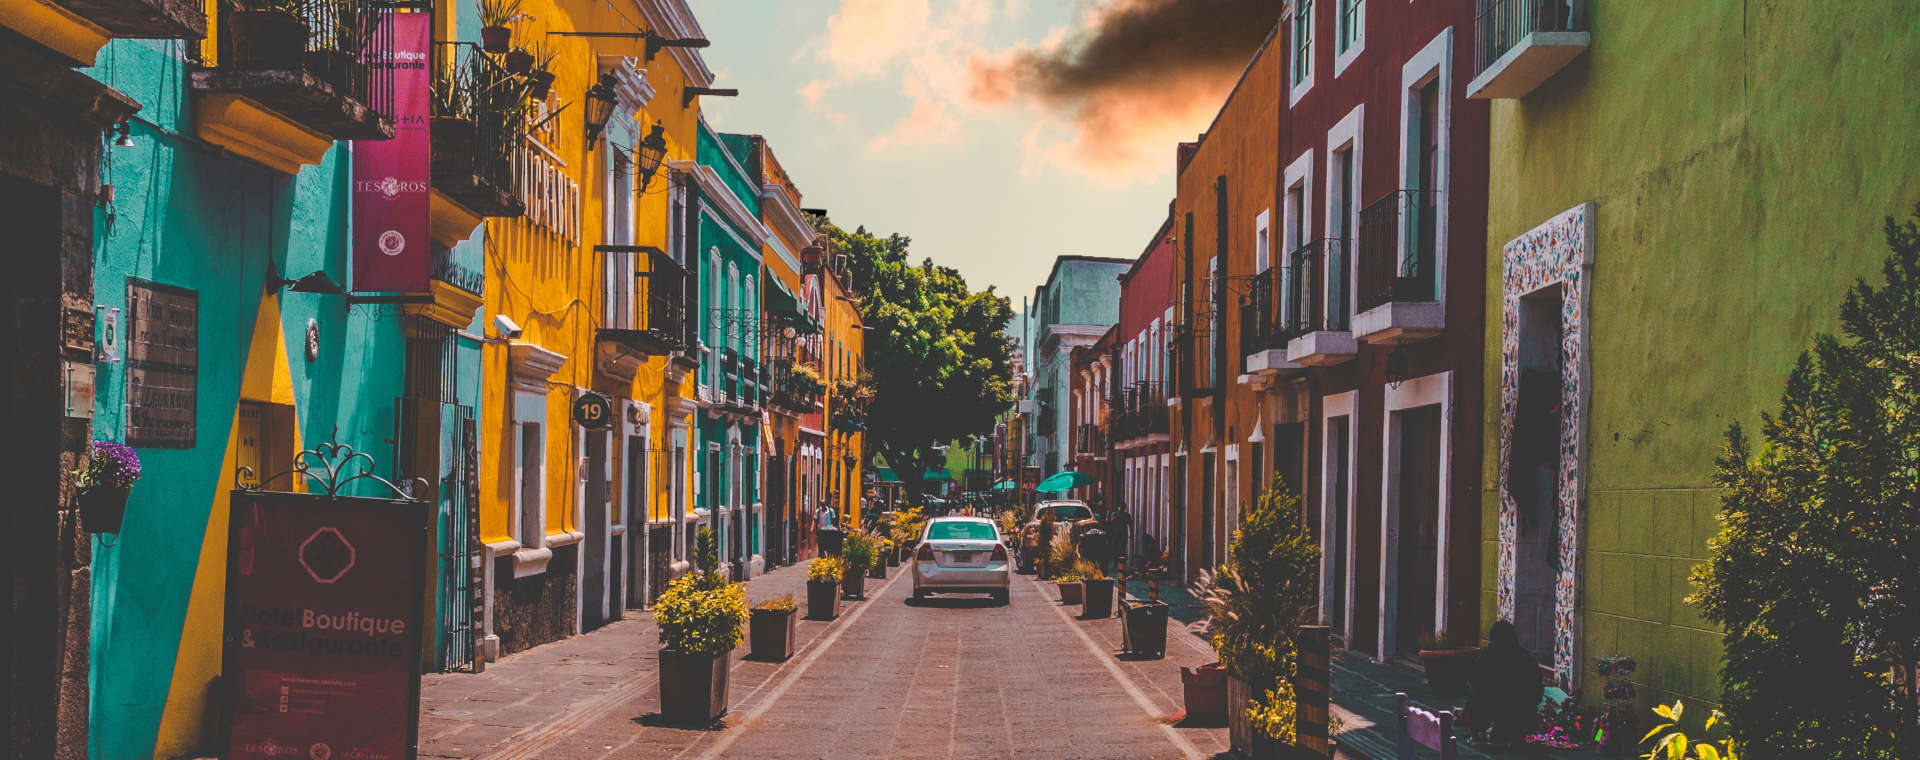 Pros and Cons of Doing Business in Mexico — Should You Go?